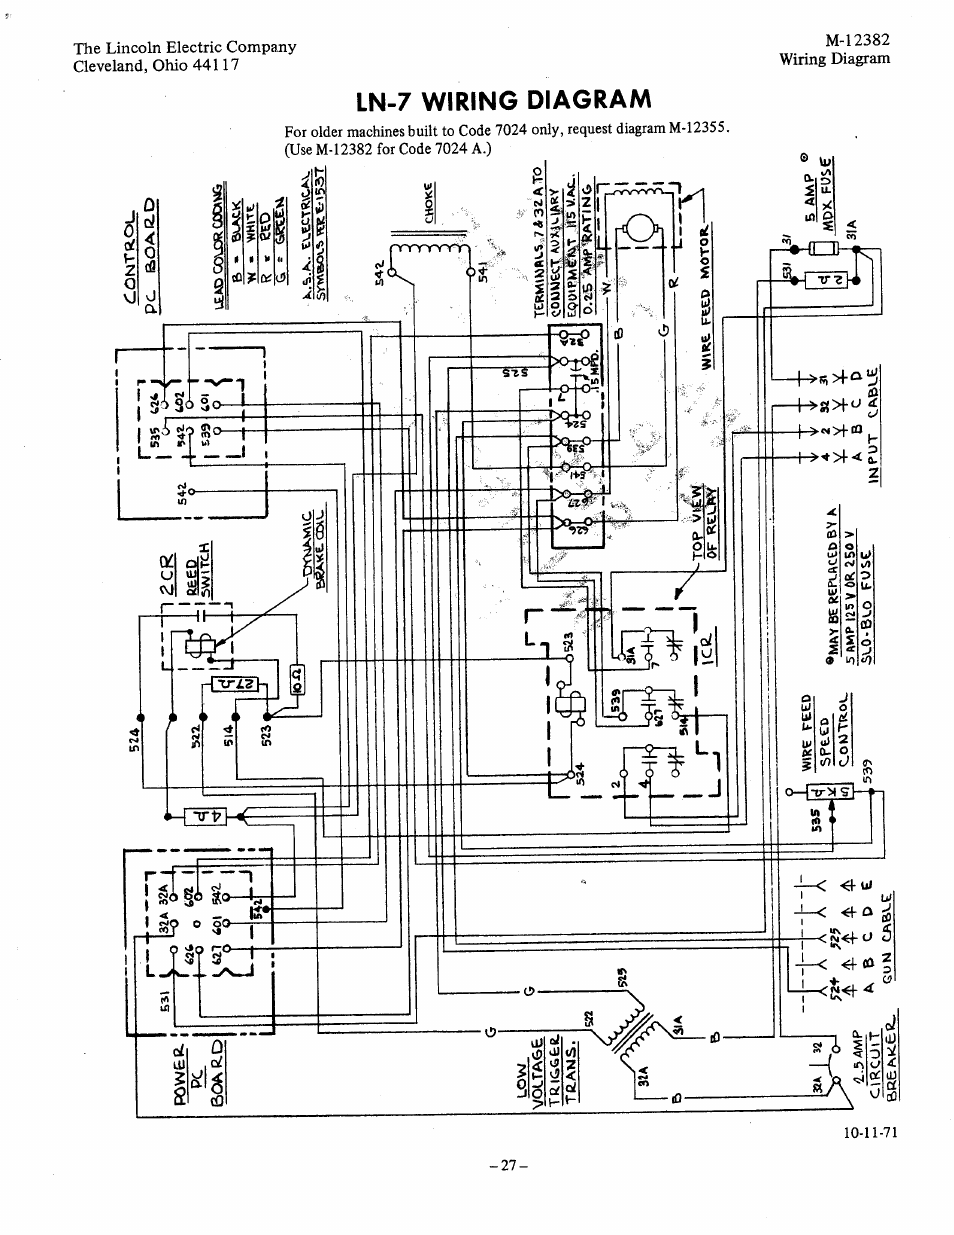 Captivating Lincoln 225 S Wiring Diagram Gallery Diagram symbol – Lincoln 225 S Wiring Diagram